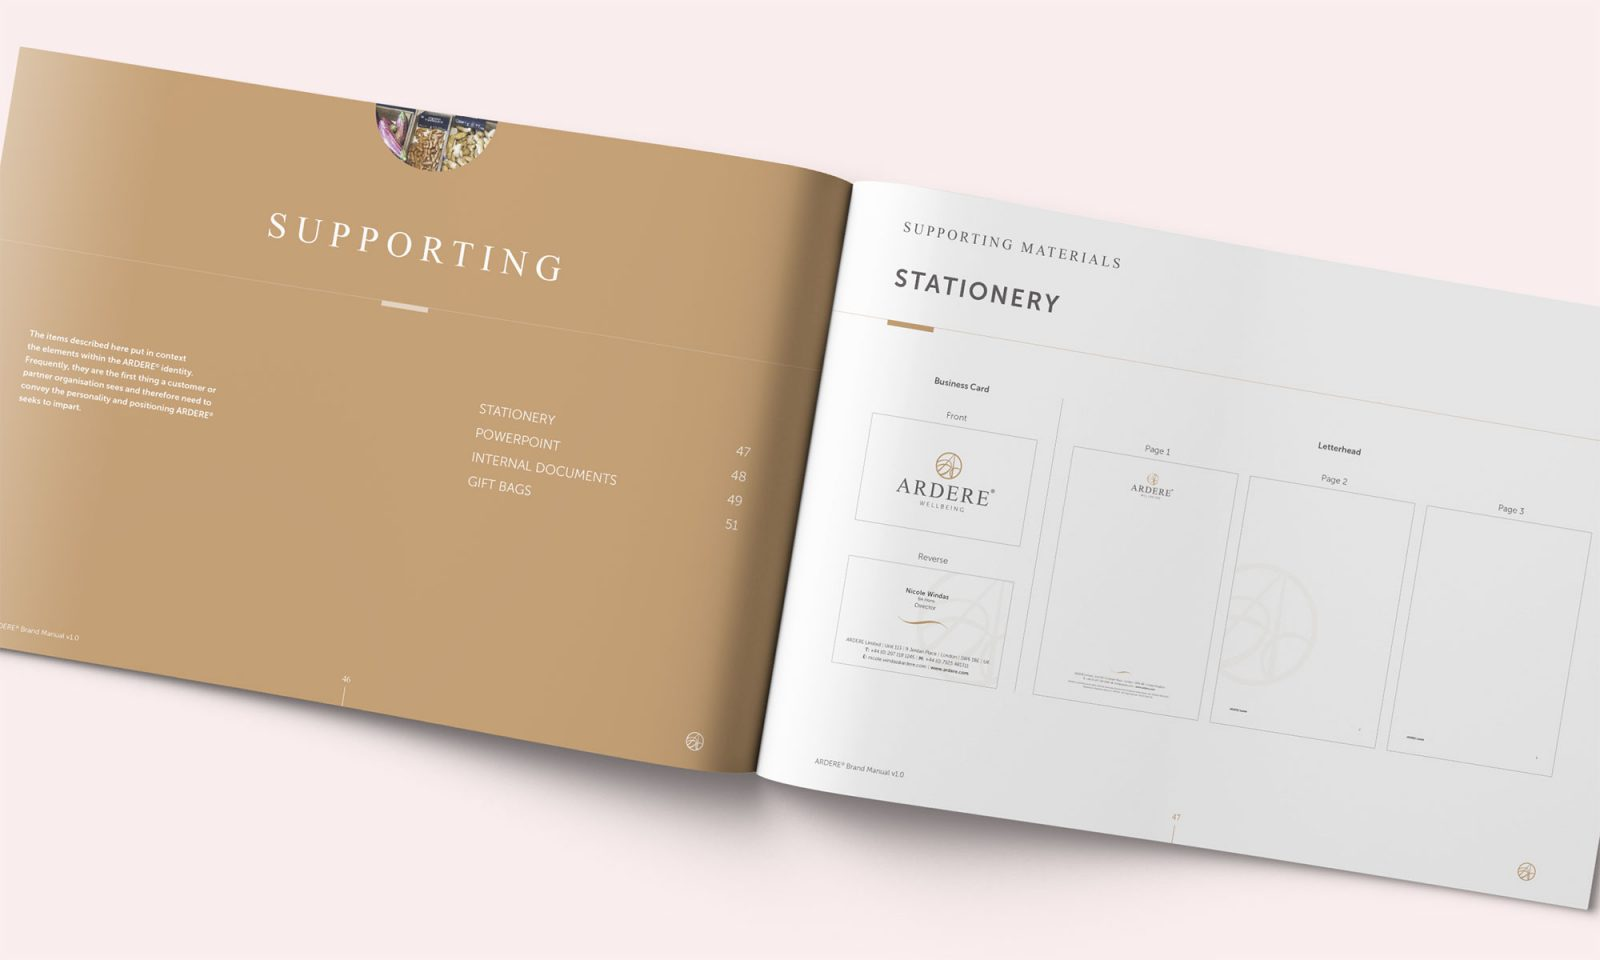 Ardere brand manual spread showing stationery